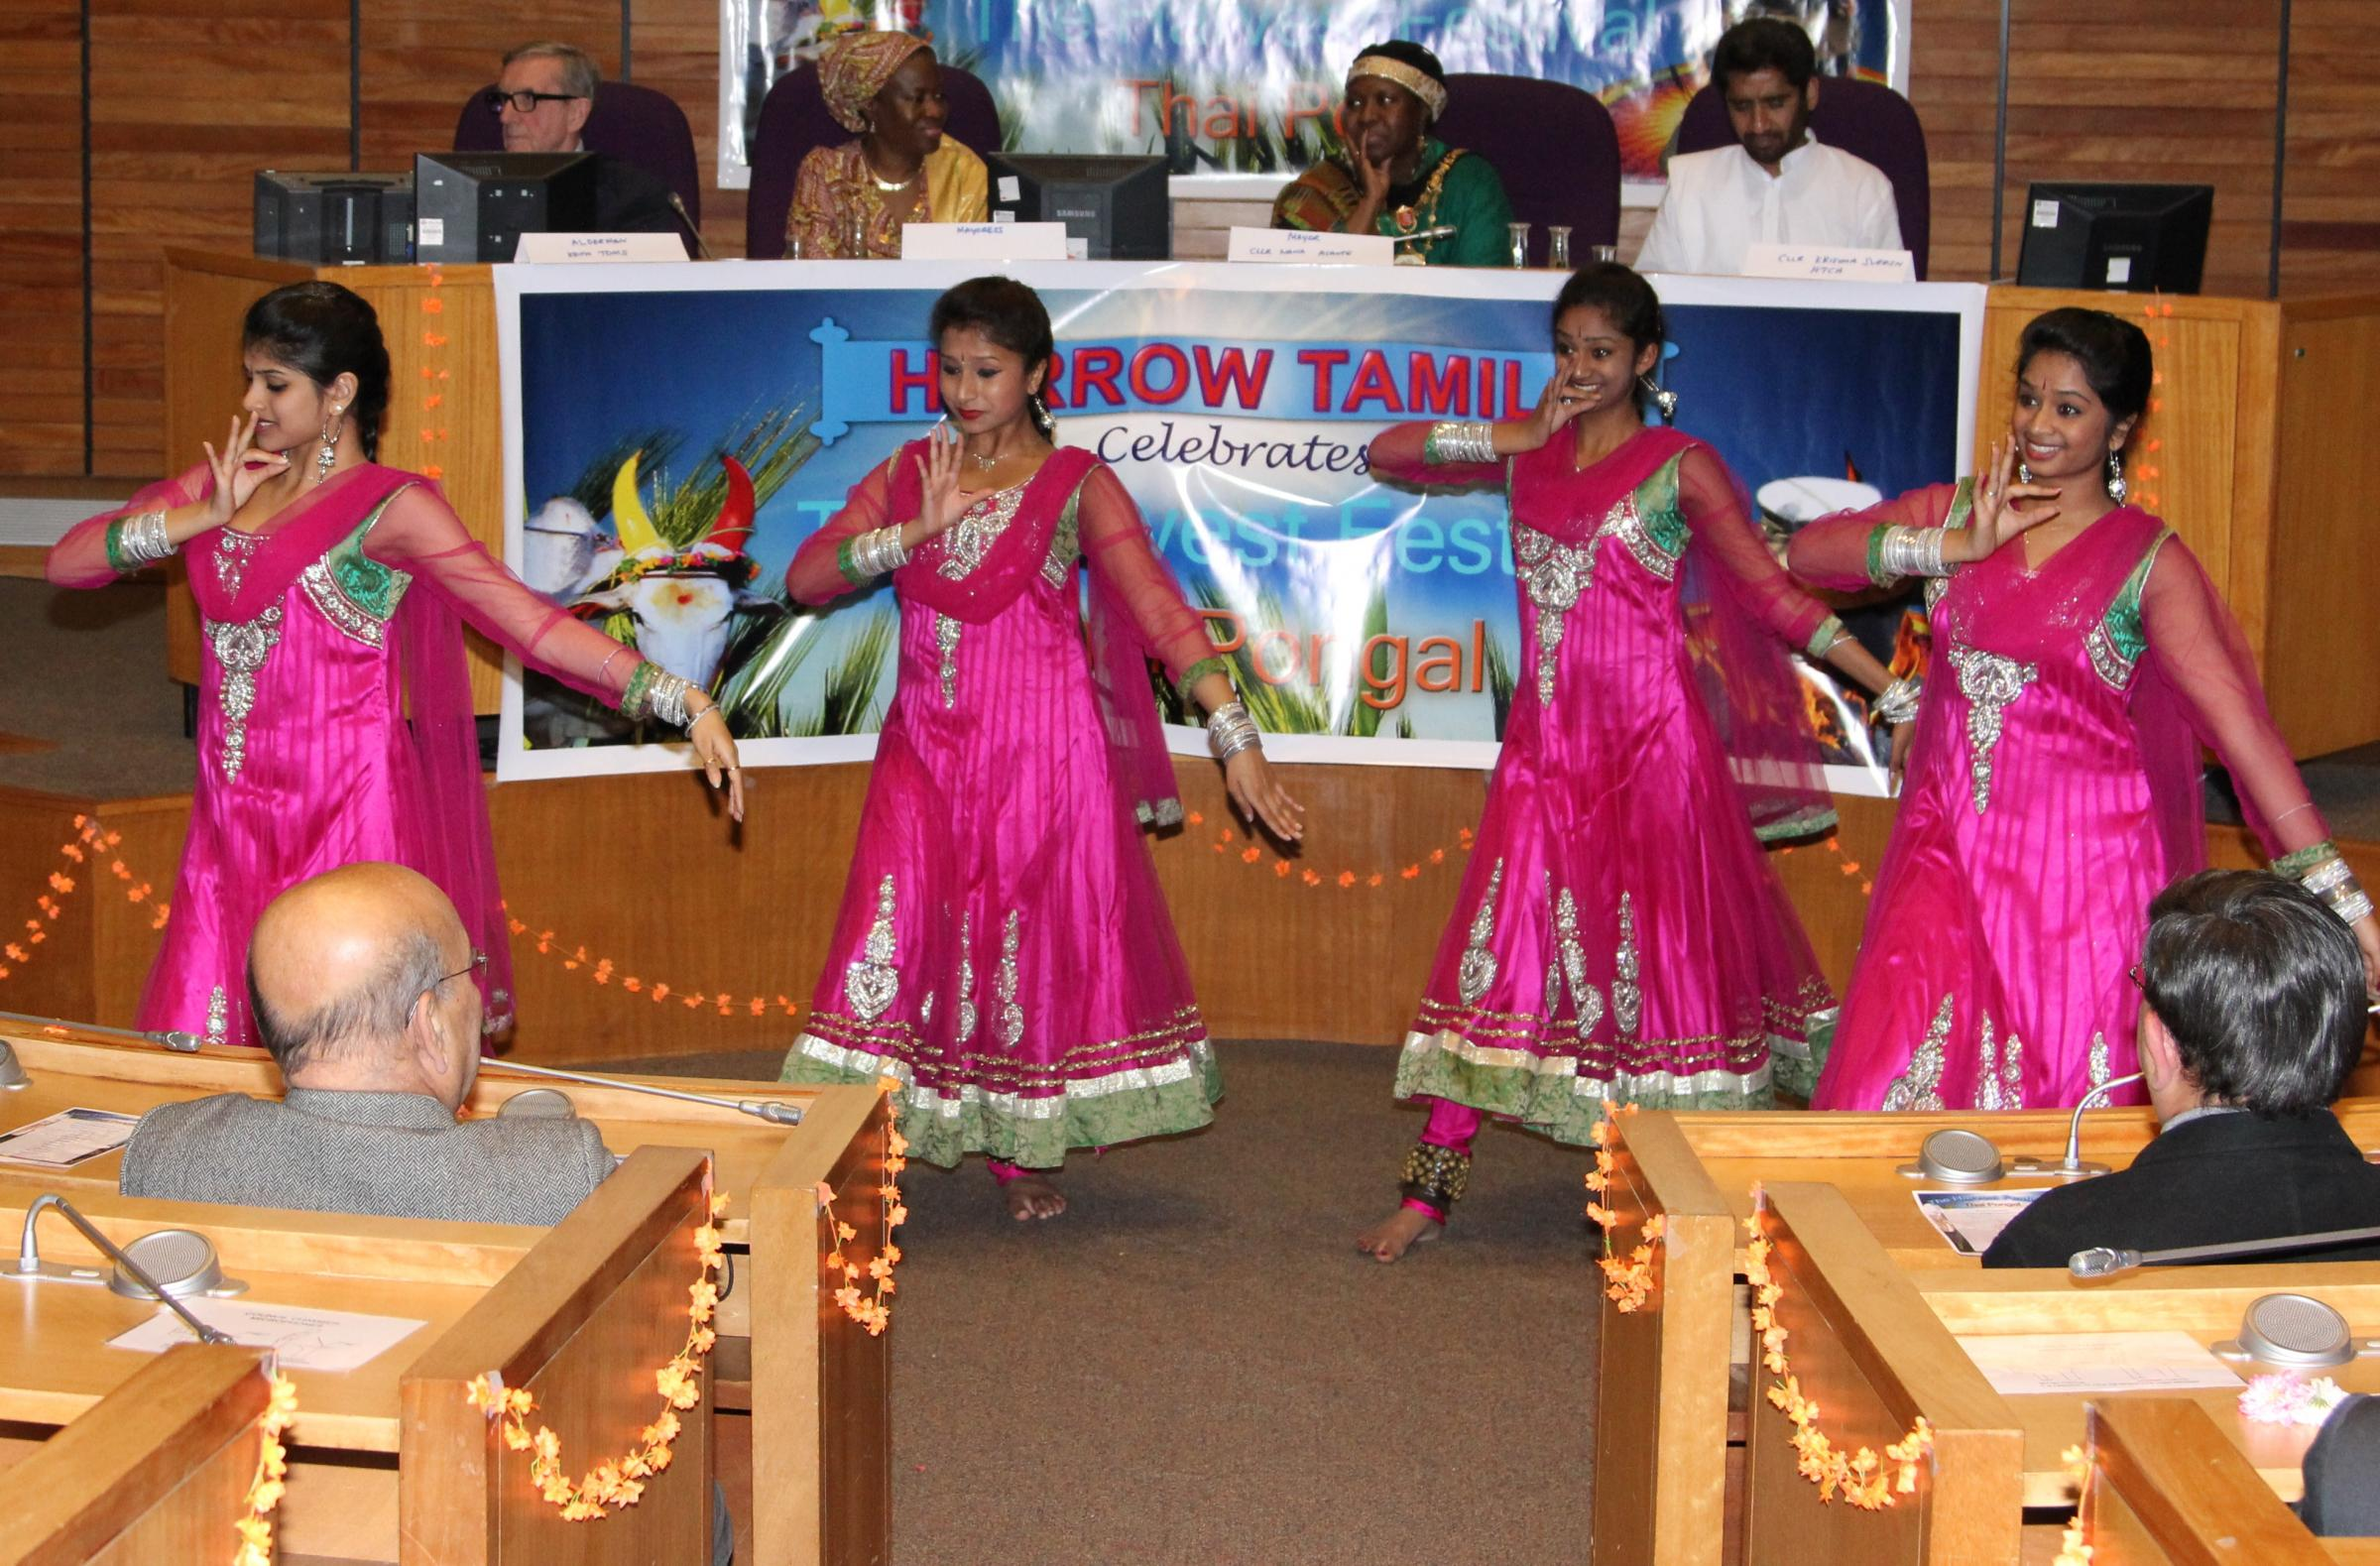 Community celebrates Thai Pongal harvest festival